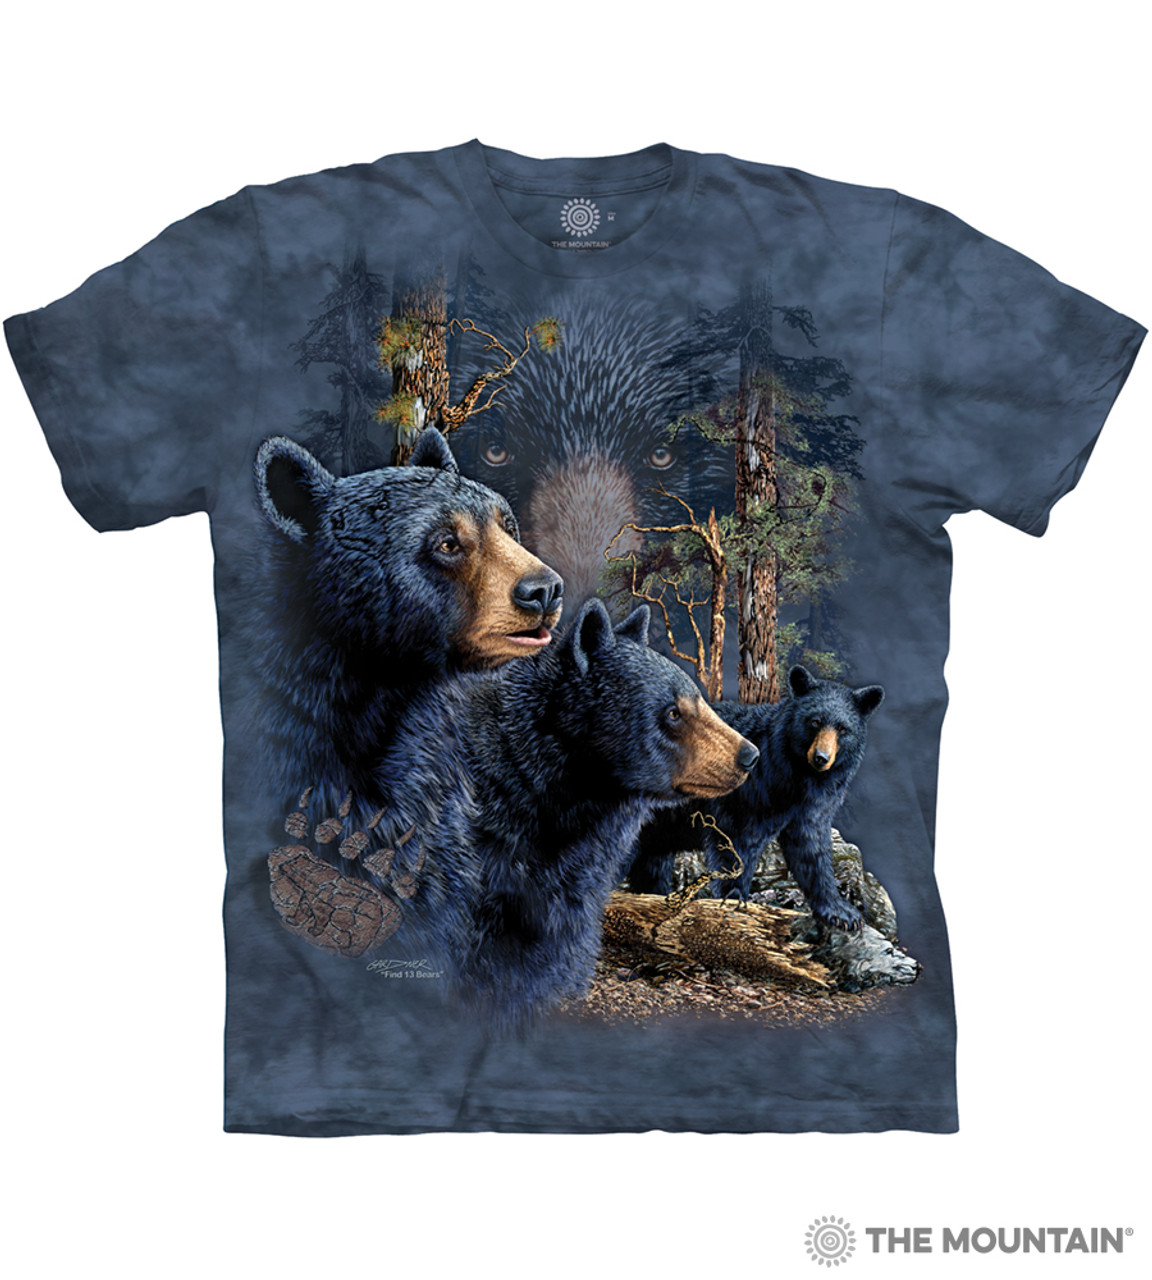 Three Black Bears Collage Wilderness The Mountain T-Shirt All Sizes 3590